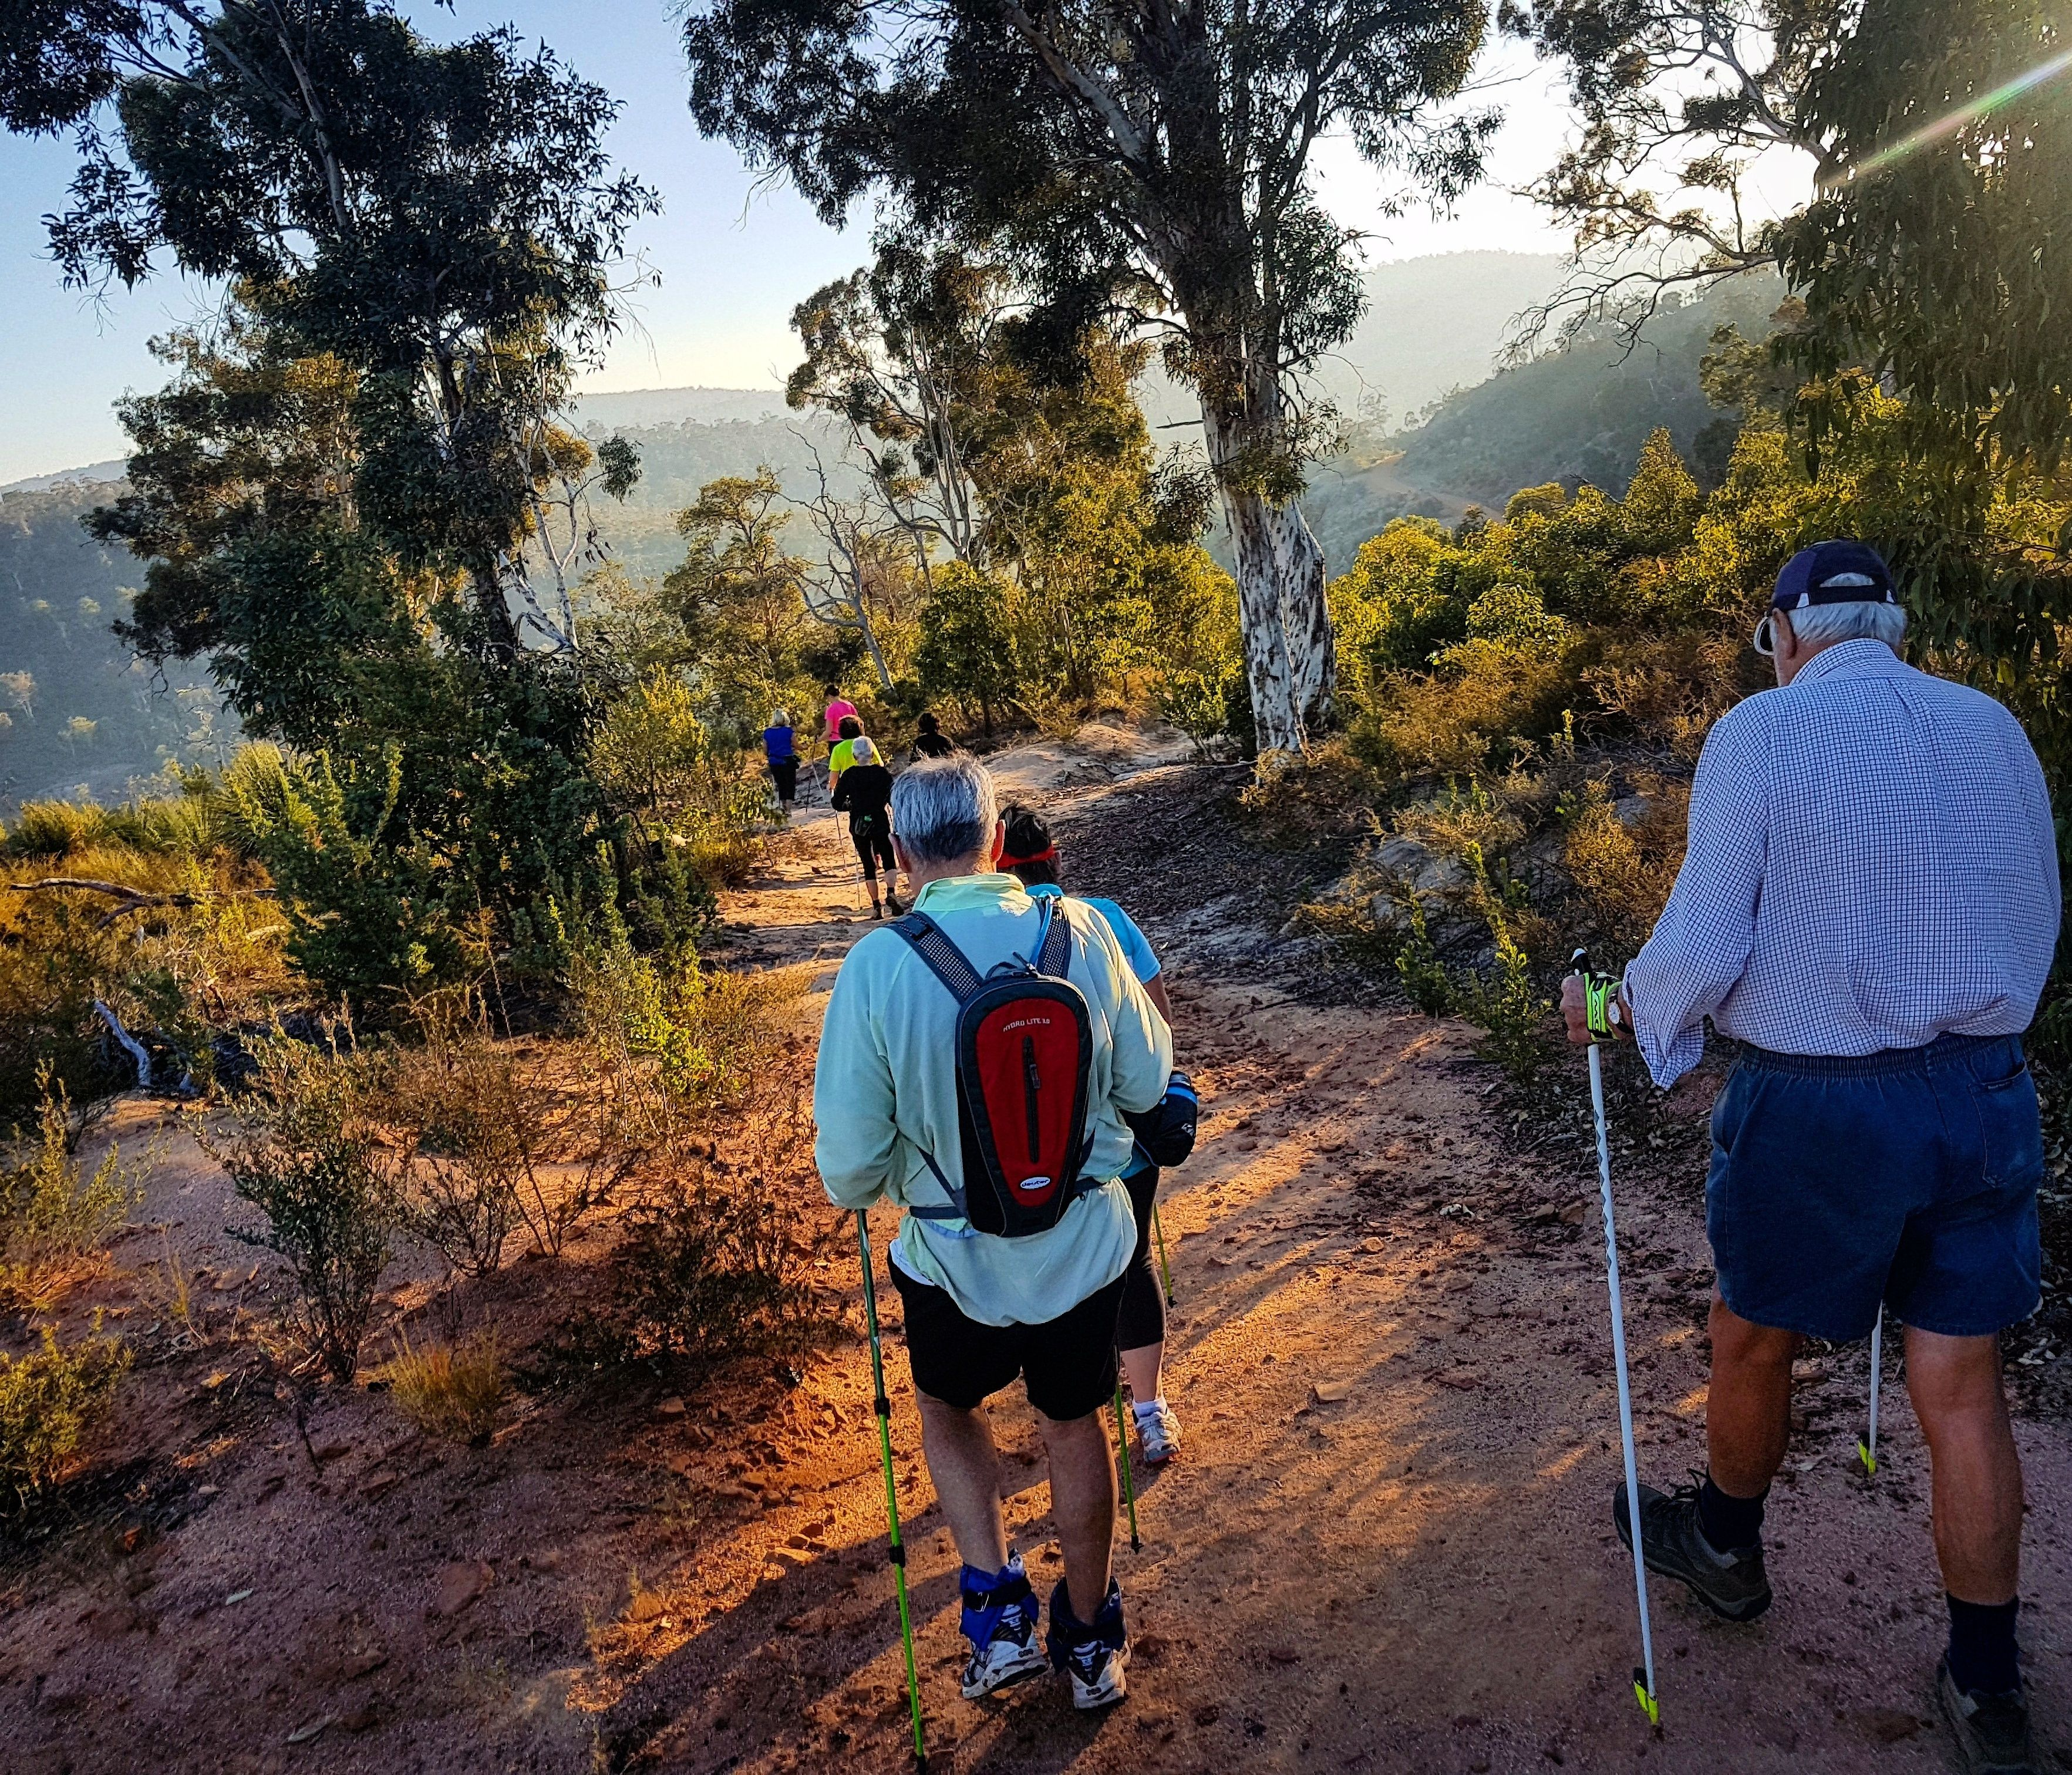 Nordic walking / Hiking